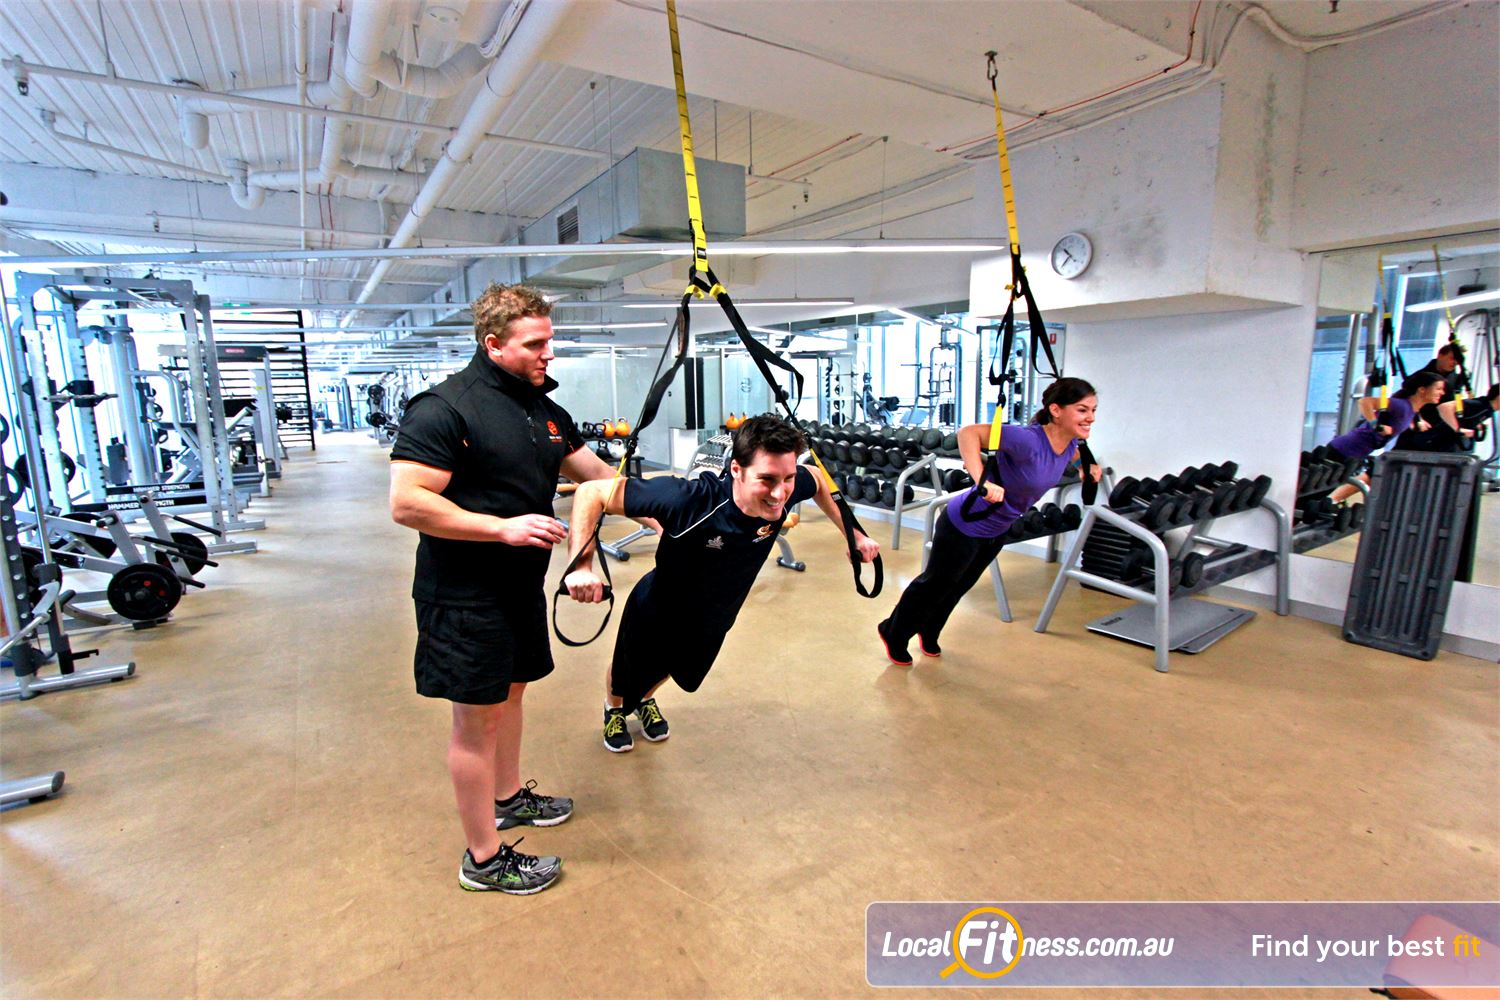 South Pacific Health Clubs Near East Melbourne Melbourne personal trainers can incorporate TRX training into your workout.